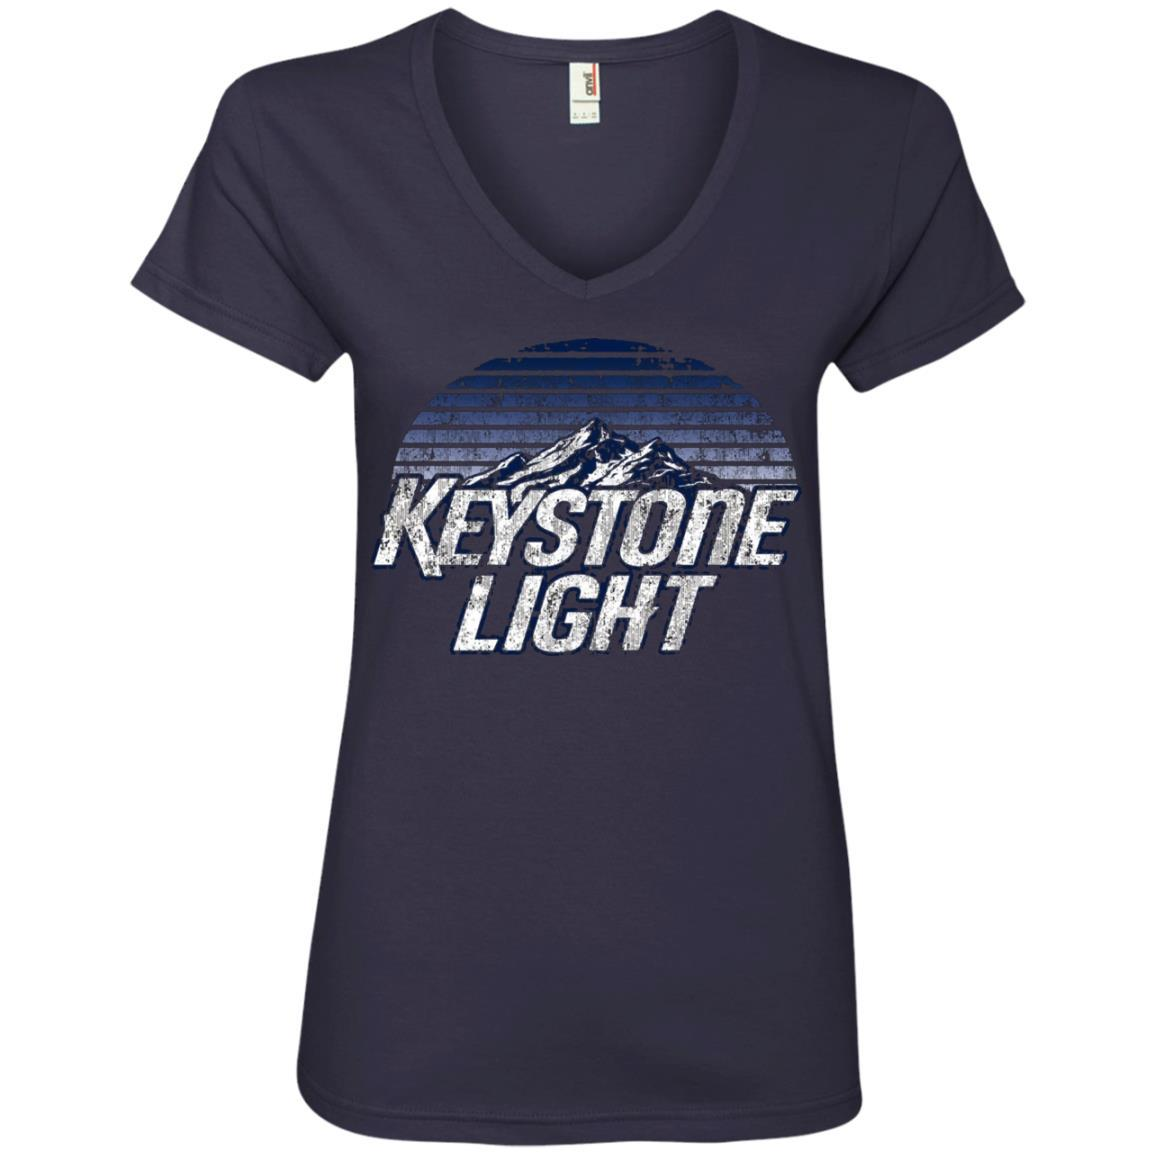 Keystone Light Beer Classic Look - Ladies' V-Neck T-Shirt Style / Color / Size